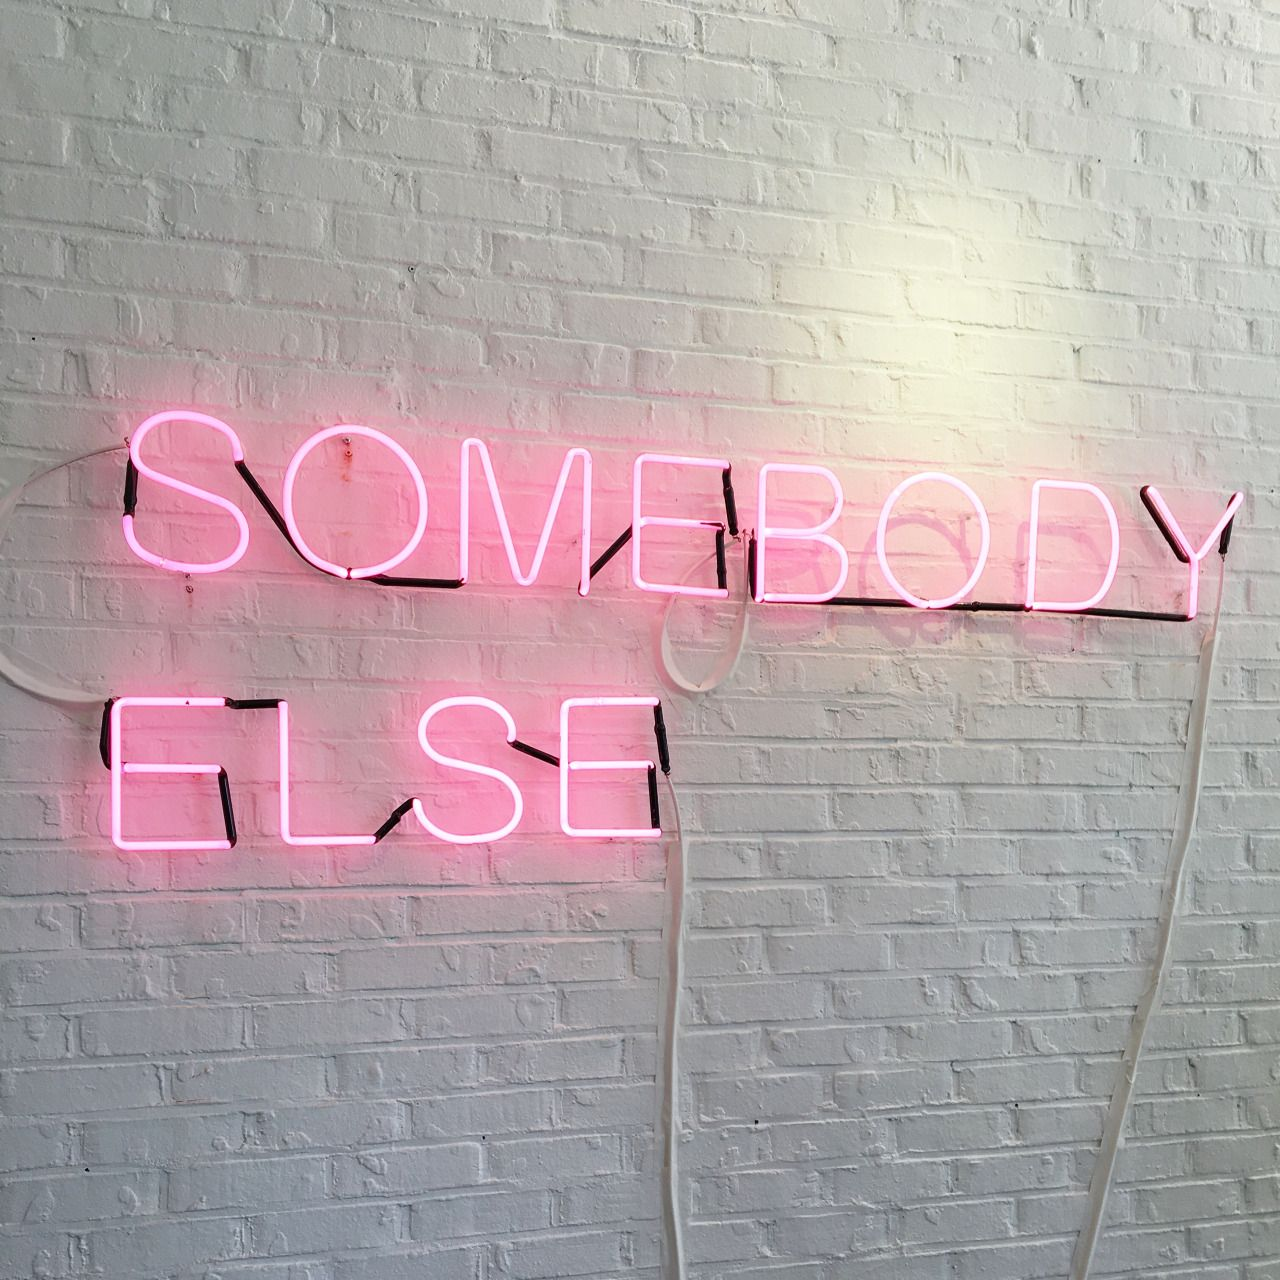 'Somebody else' Neon sign at The 1975 NYC Pop Up Shop